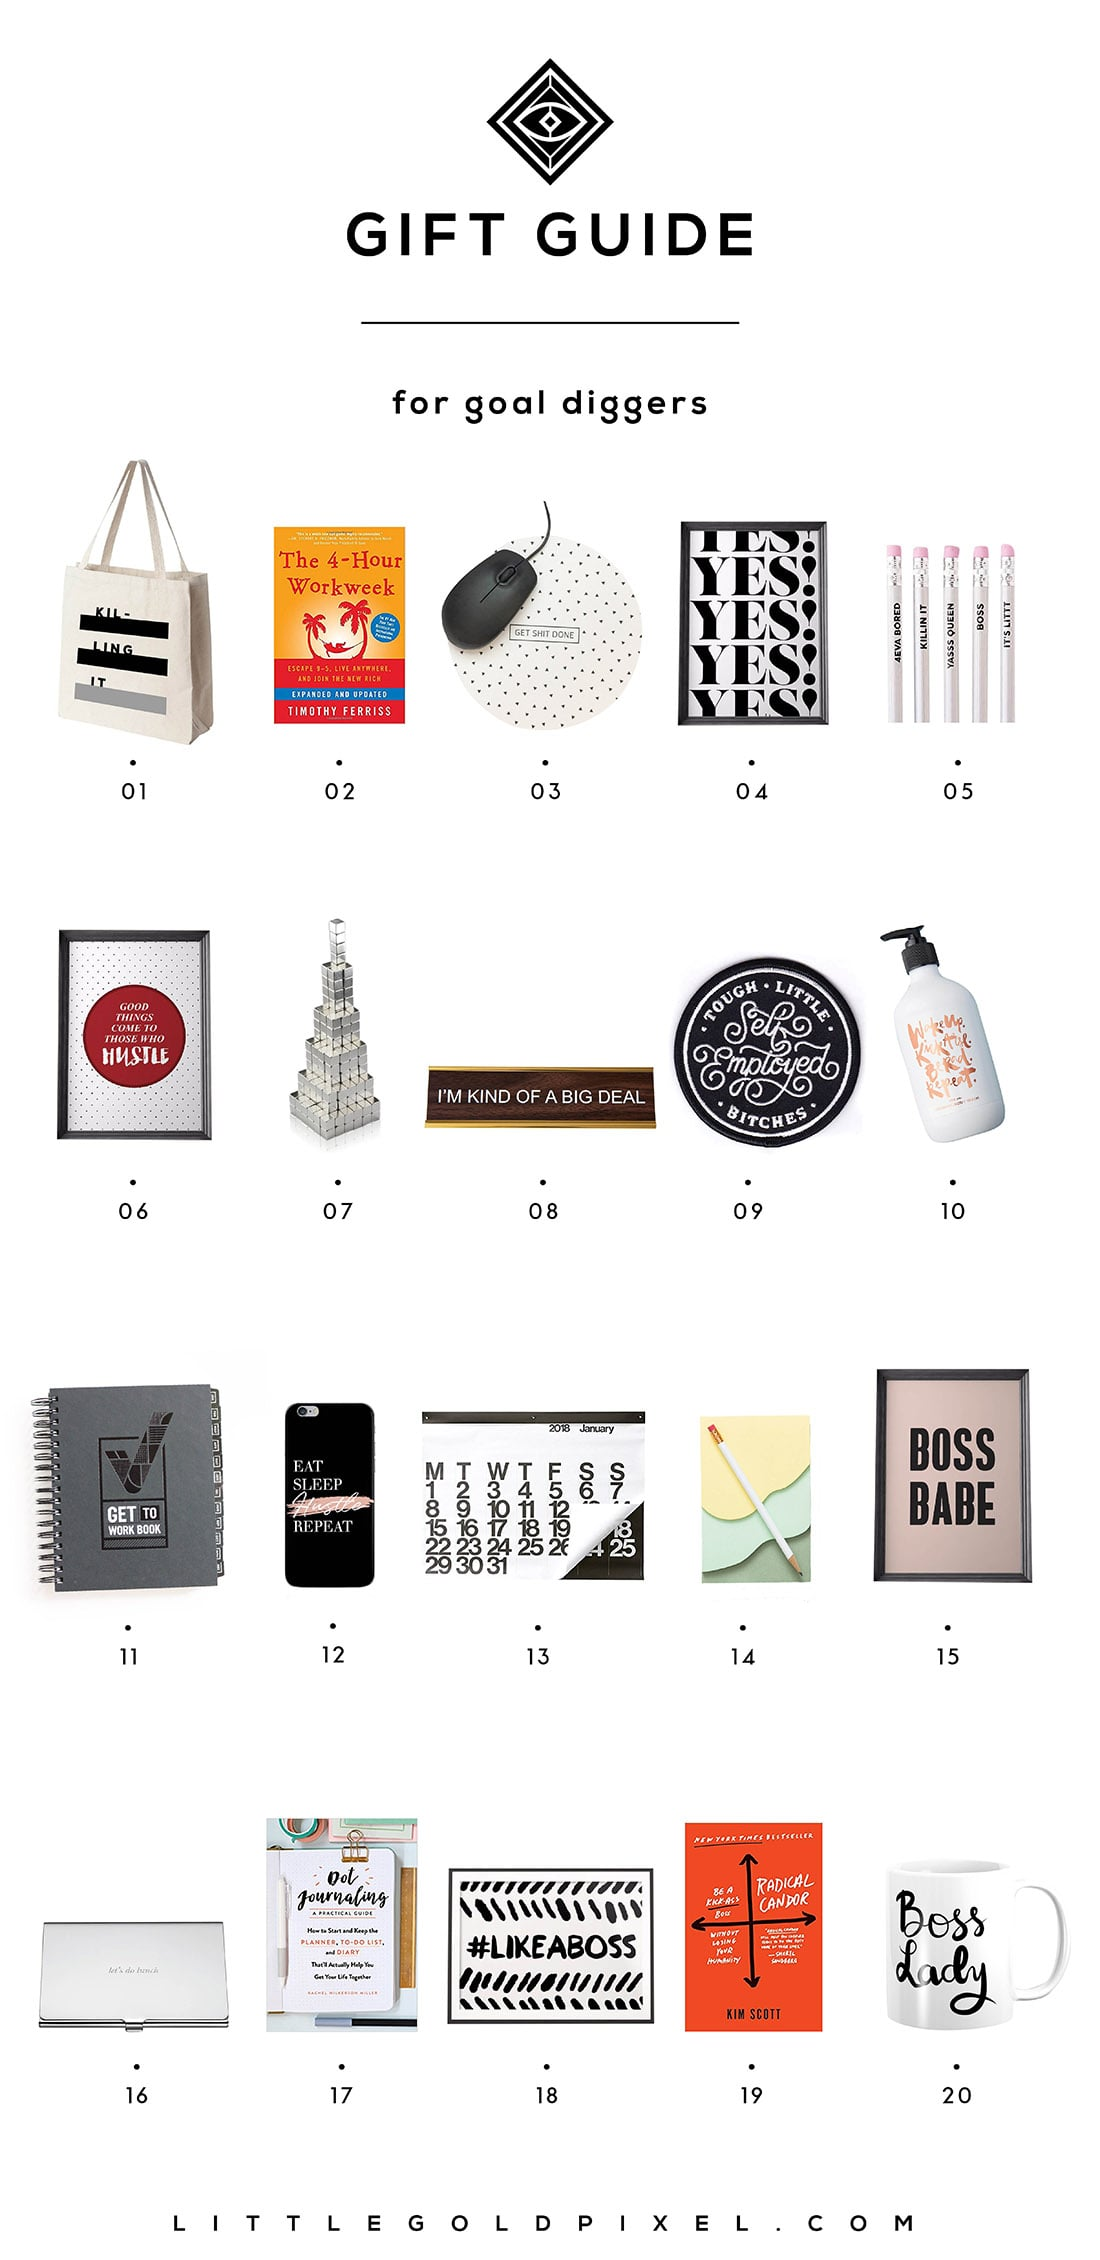 Little Gold Pixel's Girl Boss Gift Guide: Here are 20 gifts perfect for your favorite bad-ass goal diggers. Grab one for yourself while you're at it!